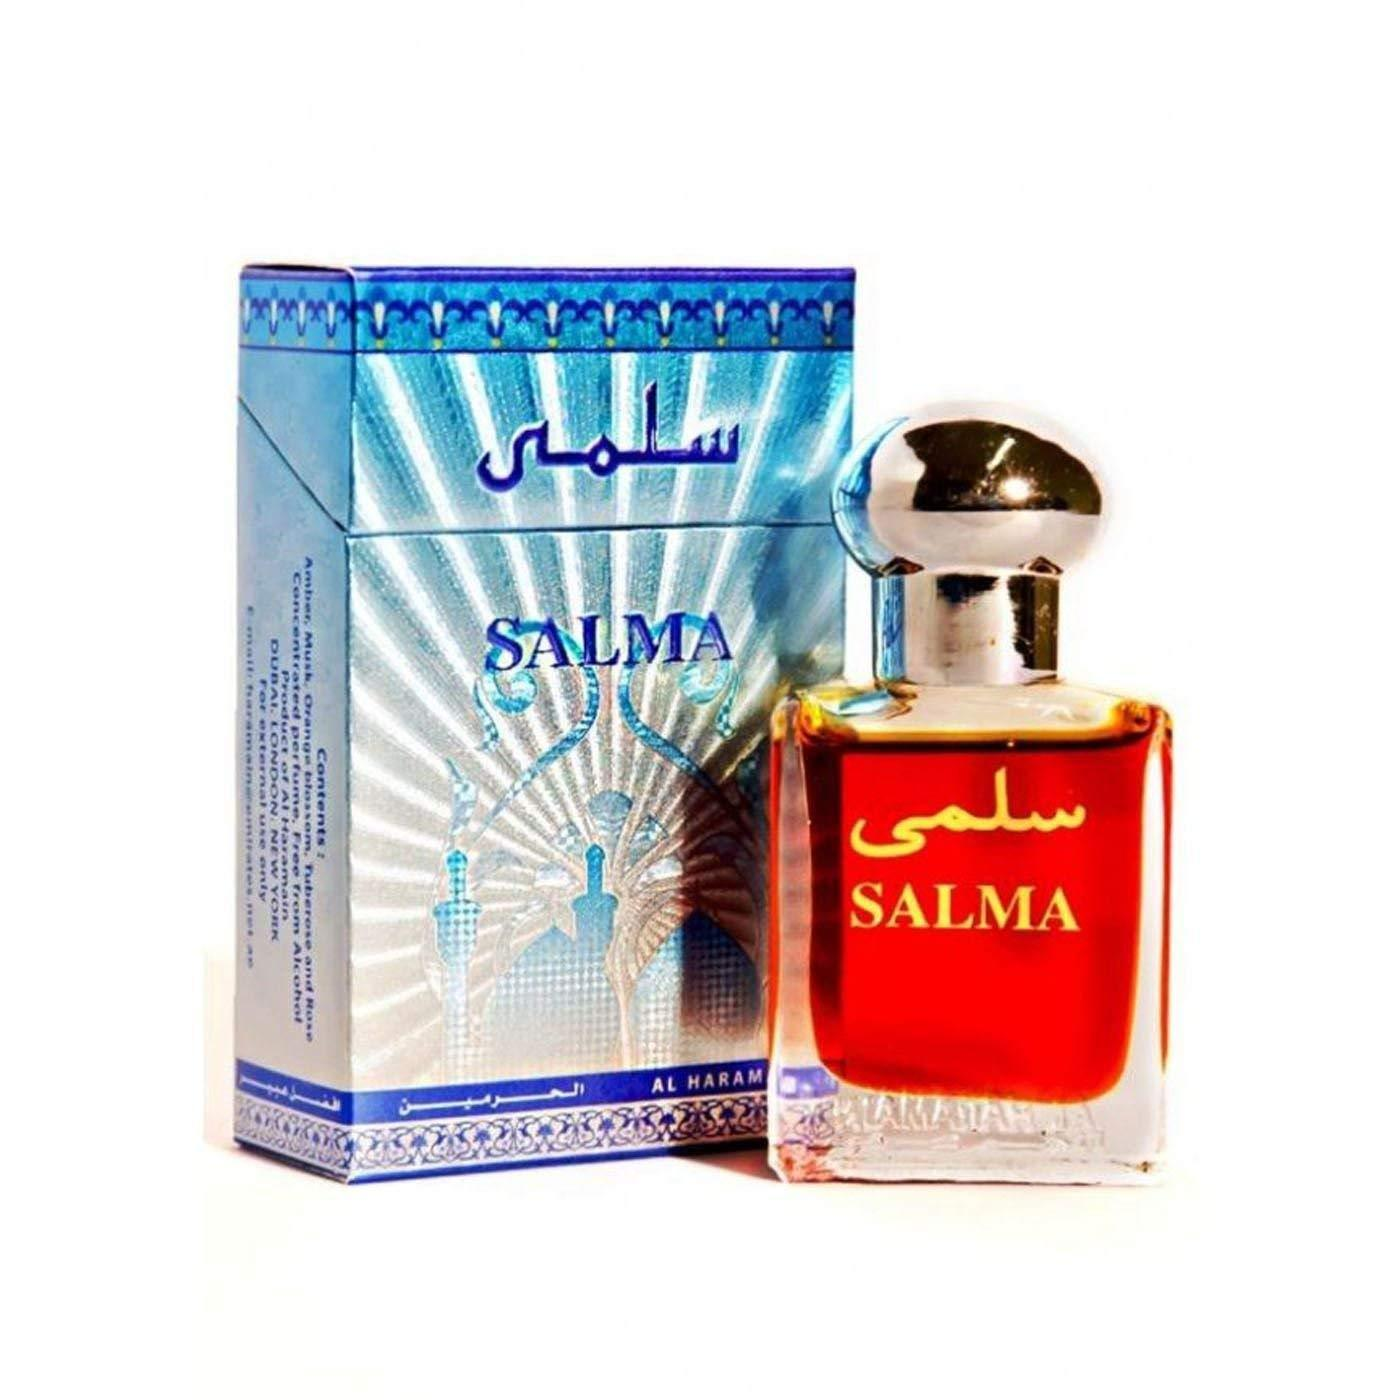 Buy Al Haramain Salma Pure Imported Attar Perfume 15ml Online in india | Adilqadri.com